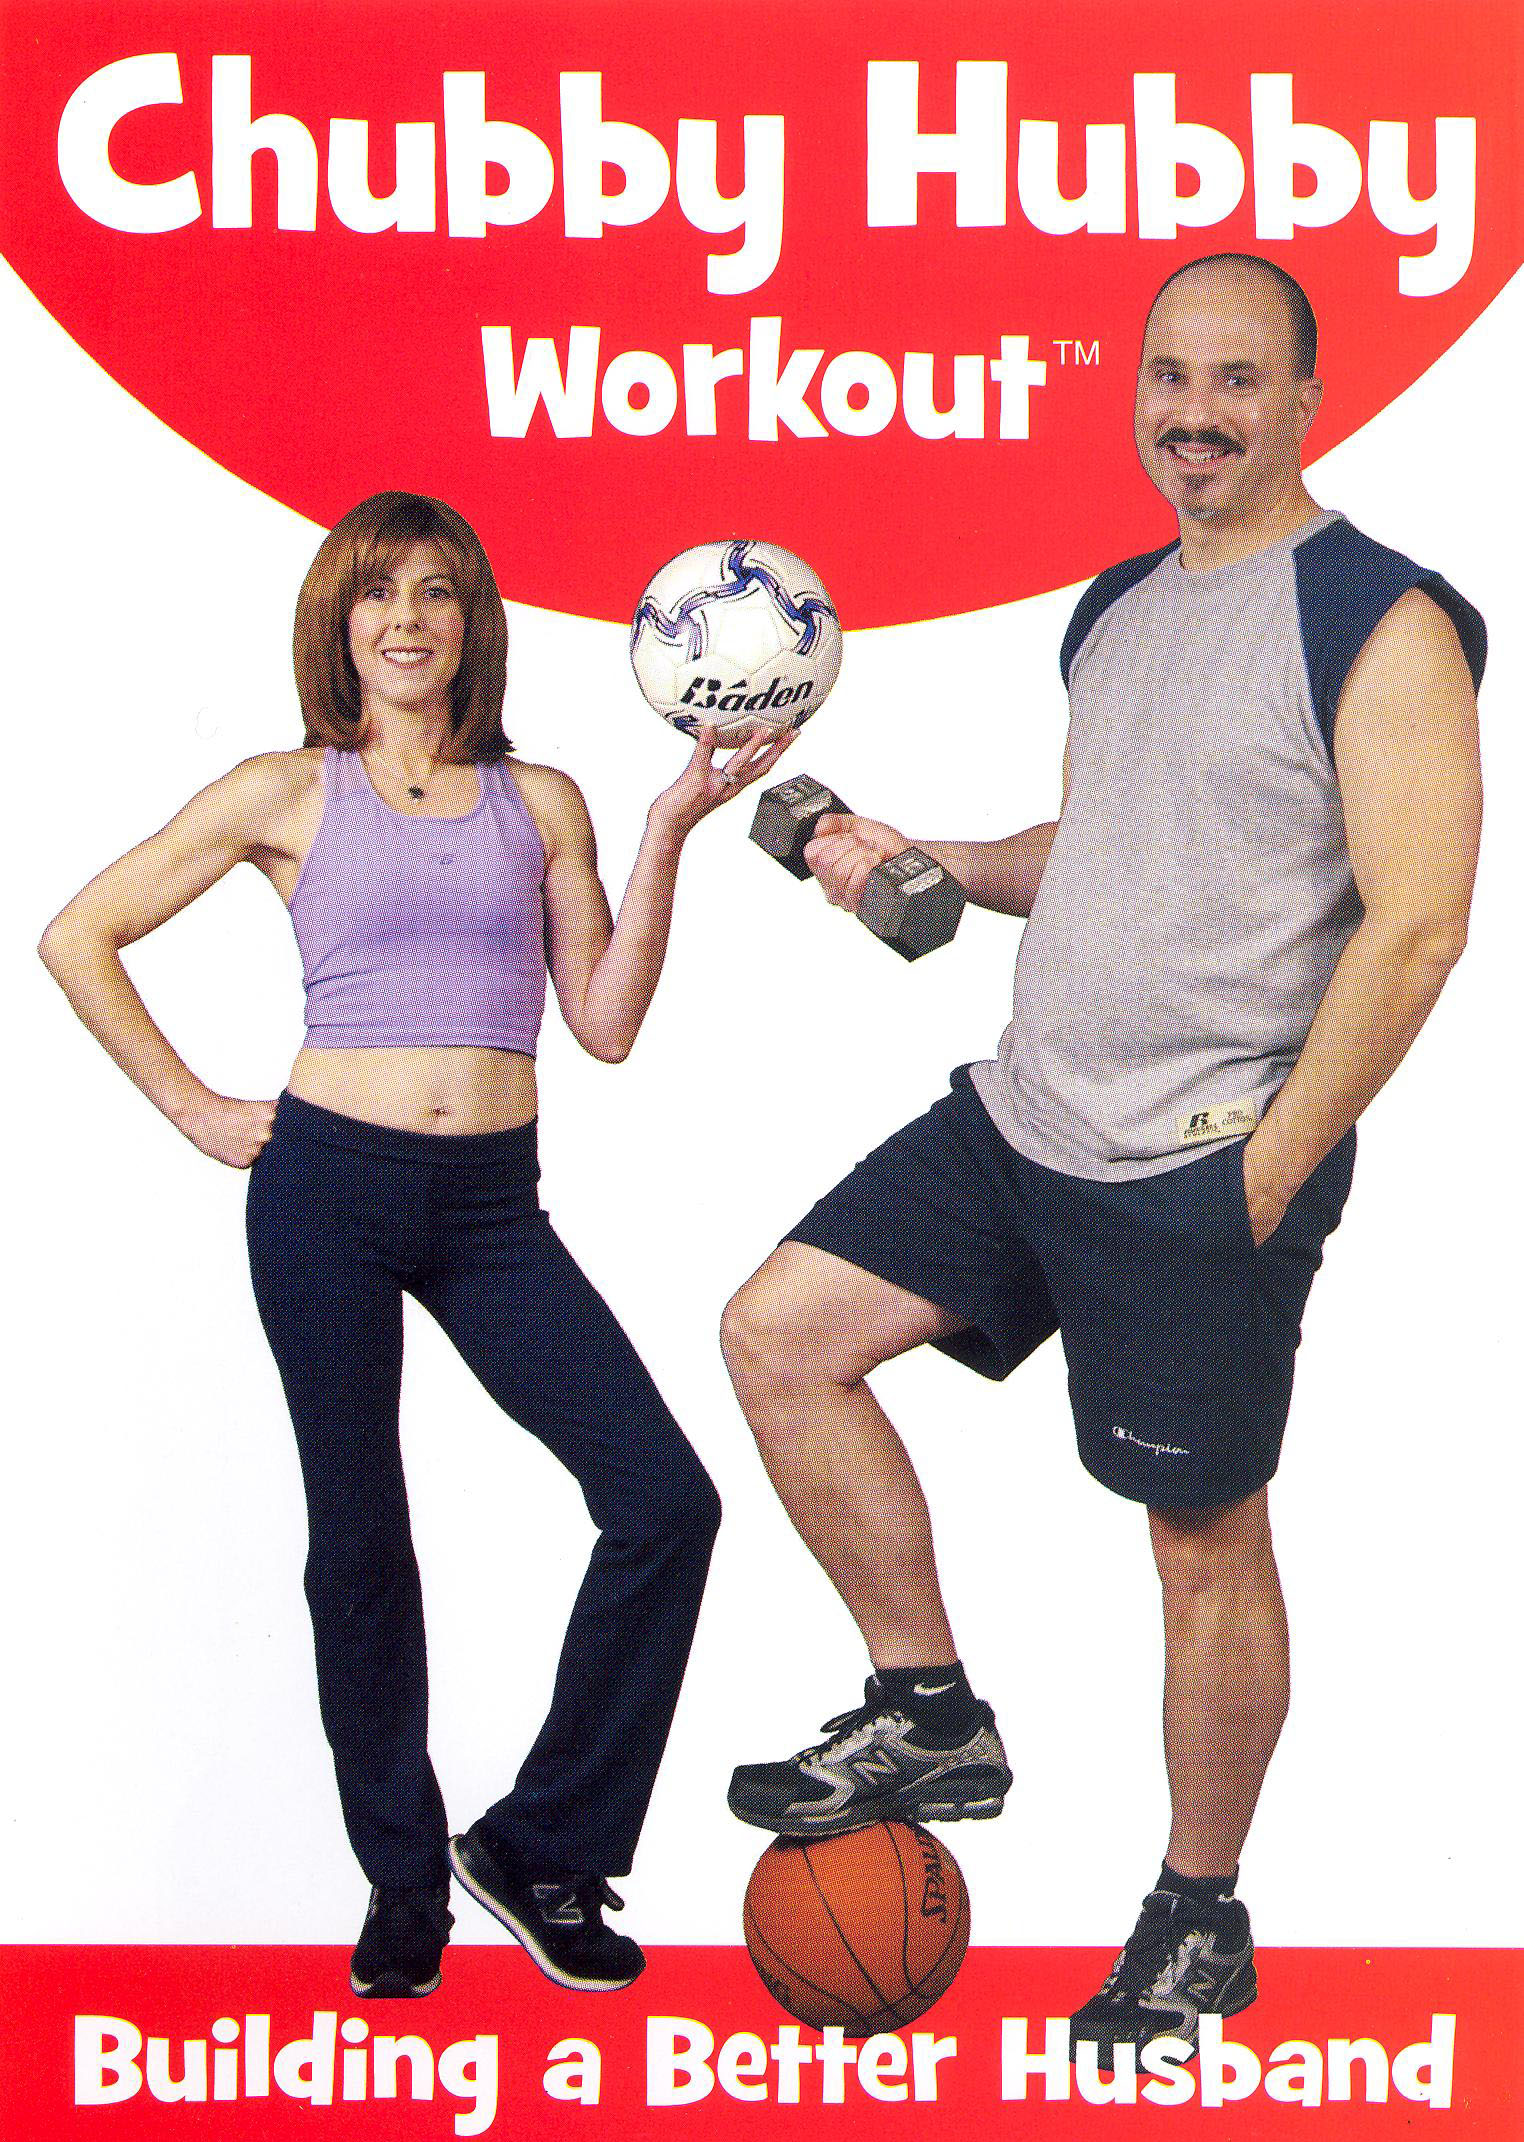 Chubby Hubby Workout: Building a Better Husband